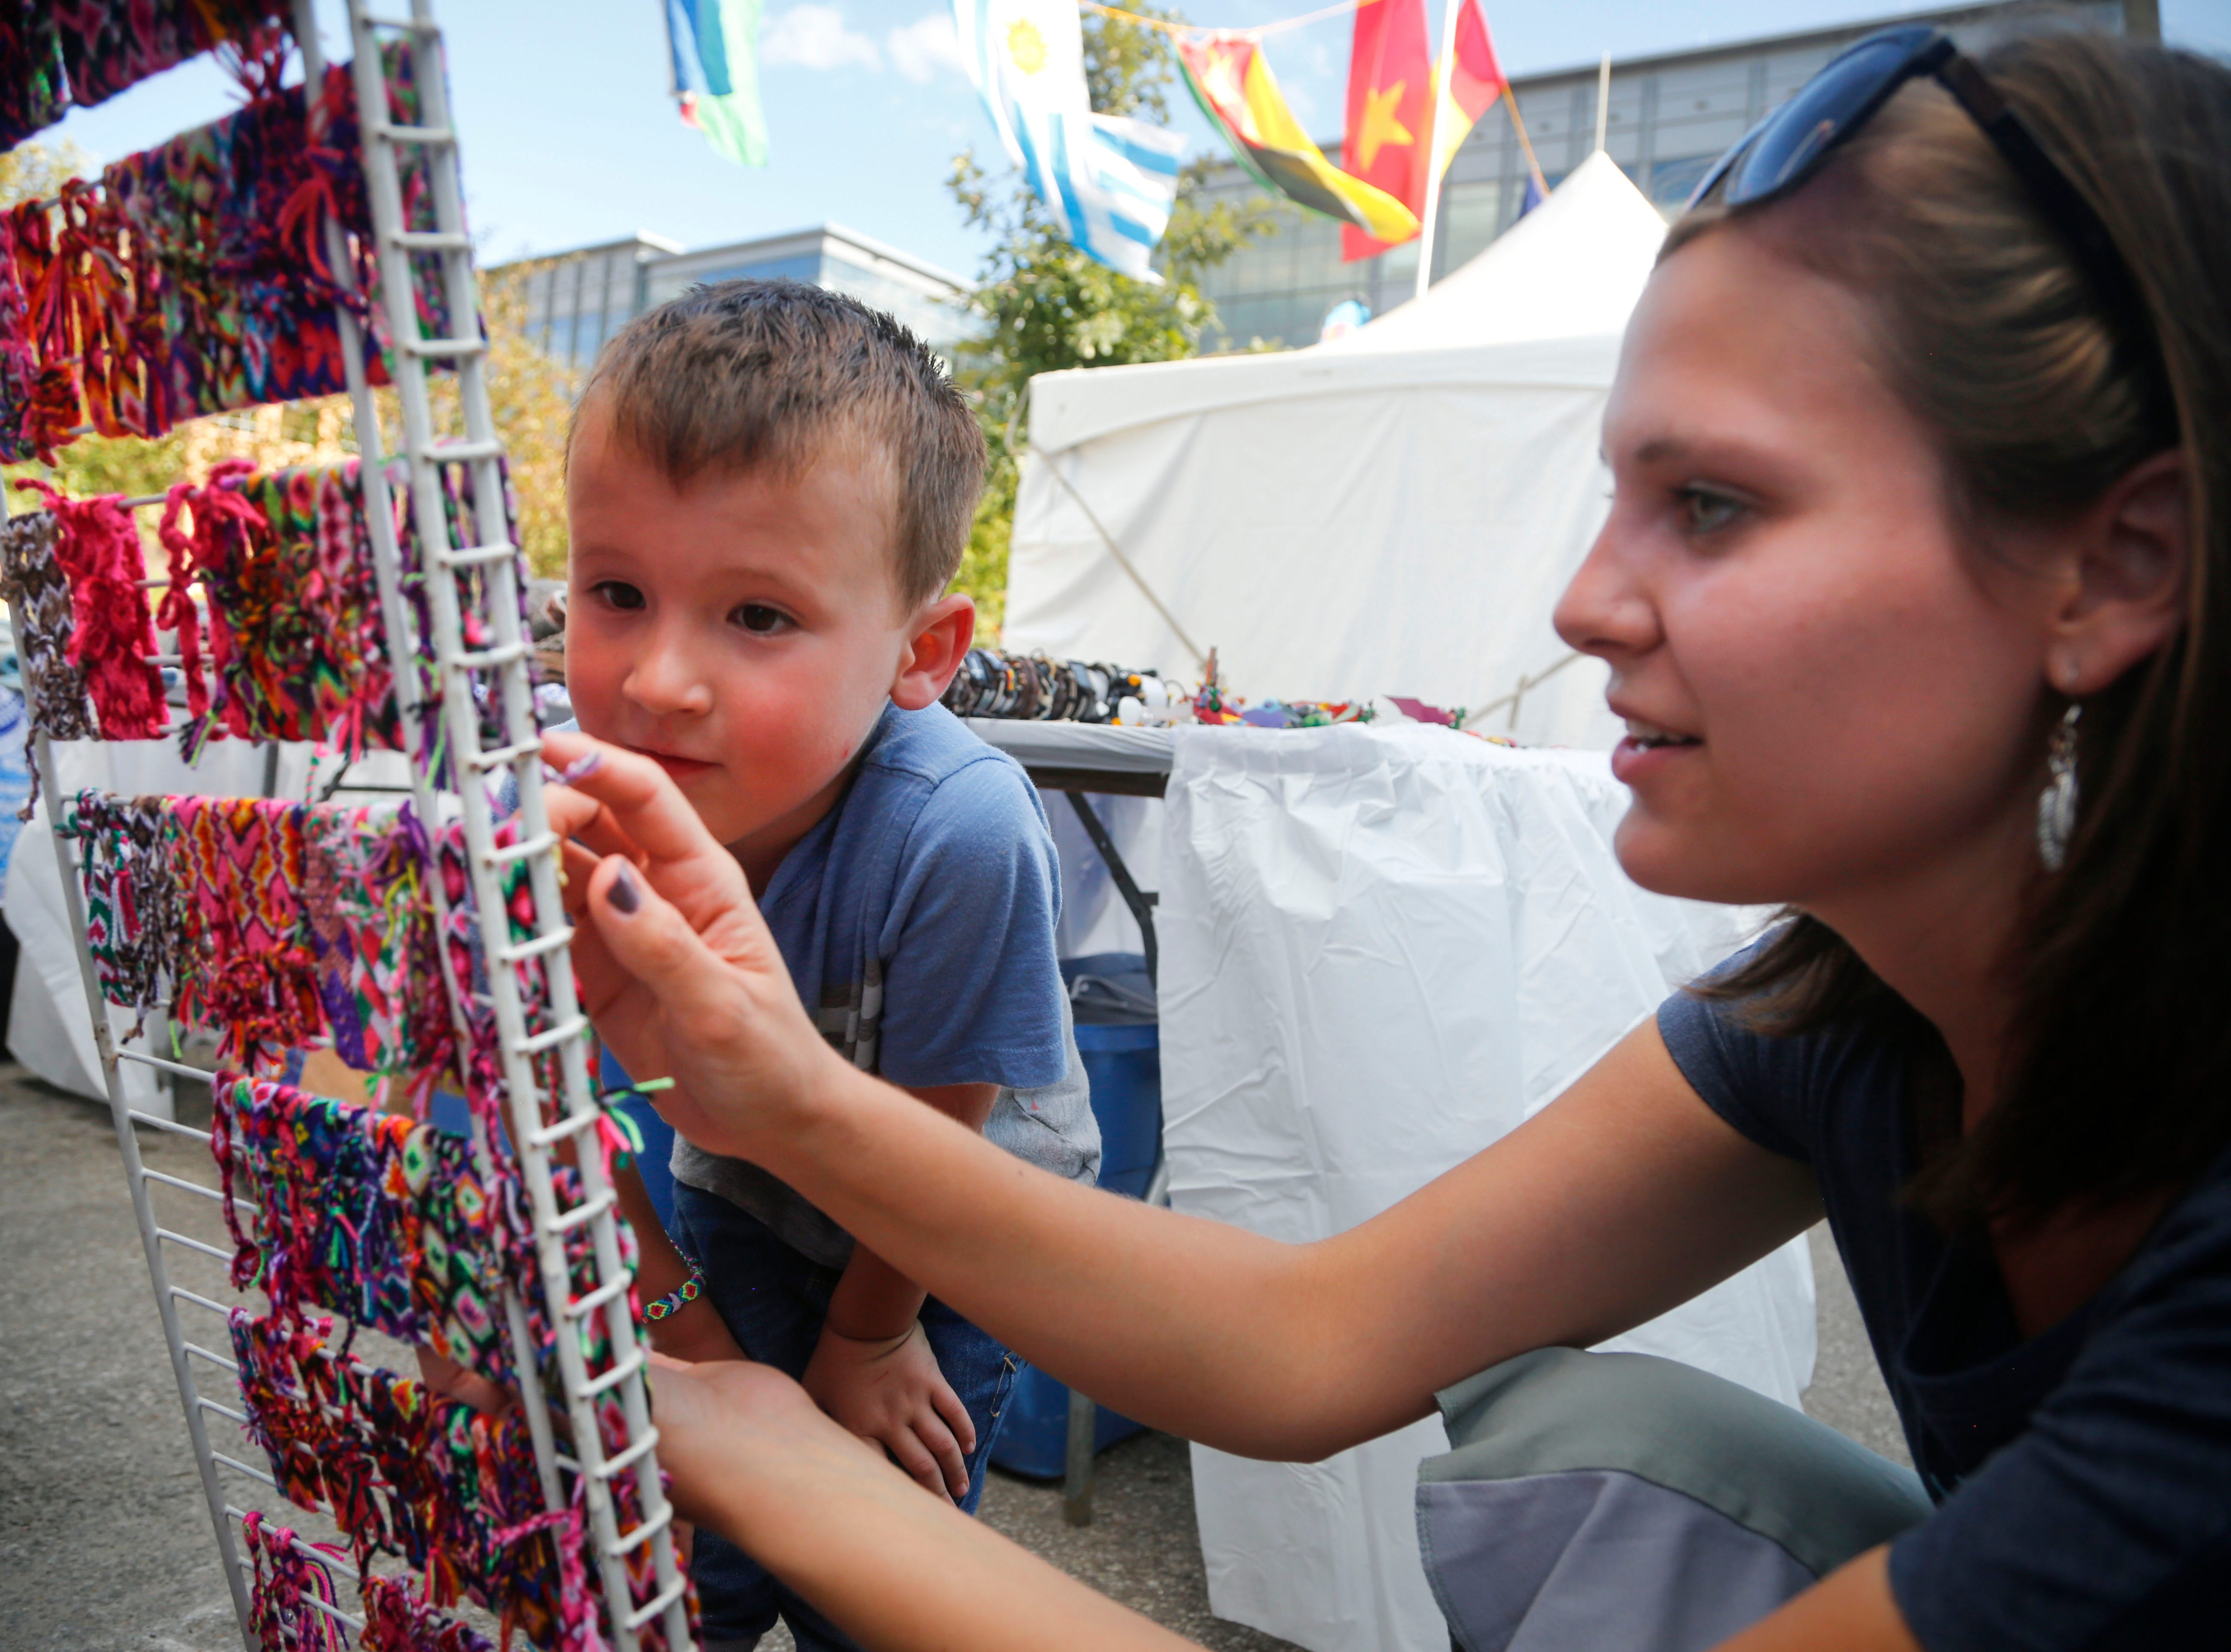 Isaac Byers, 5, and his mother laura check out bracelets from Terranova Fine Arts at the World Food and Music Festival in Des Moines Sept. 14, 2018.